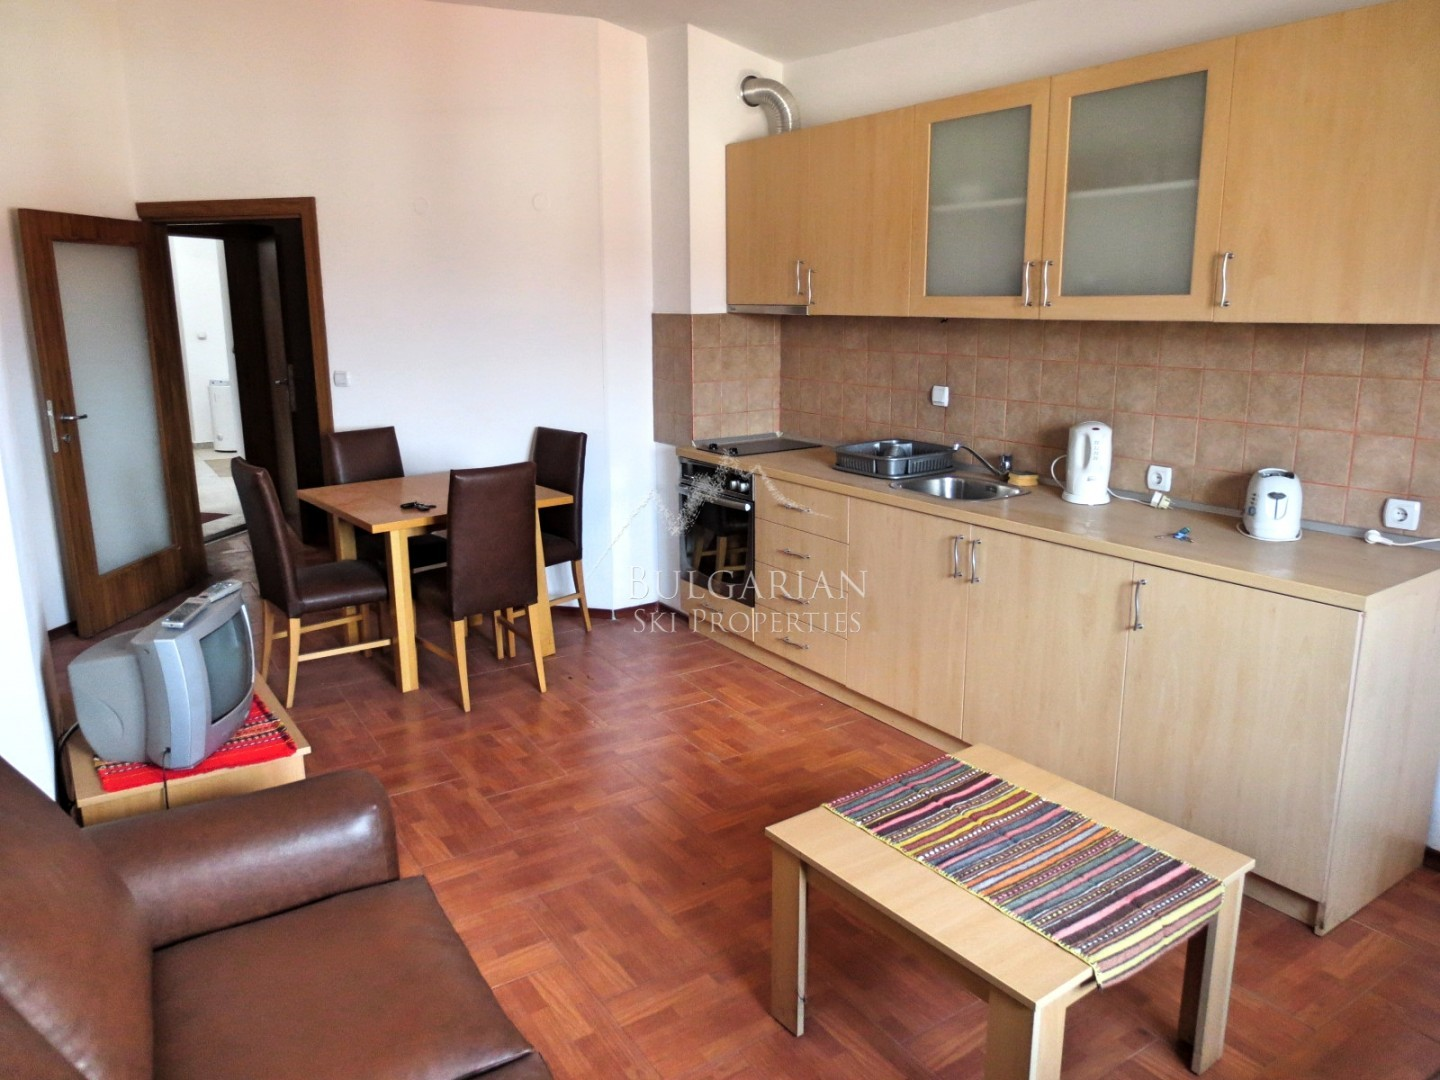 Two-bedroom apartment for sale in Bansko without maintenance fee